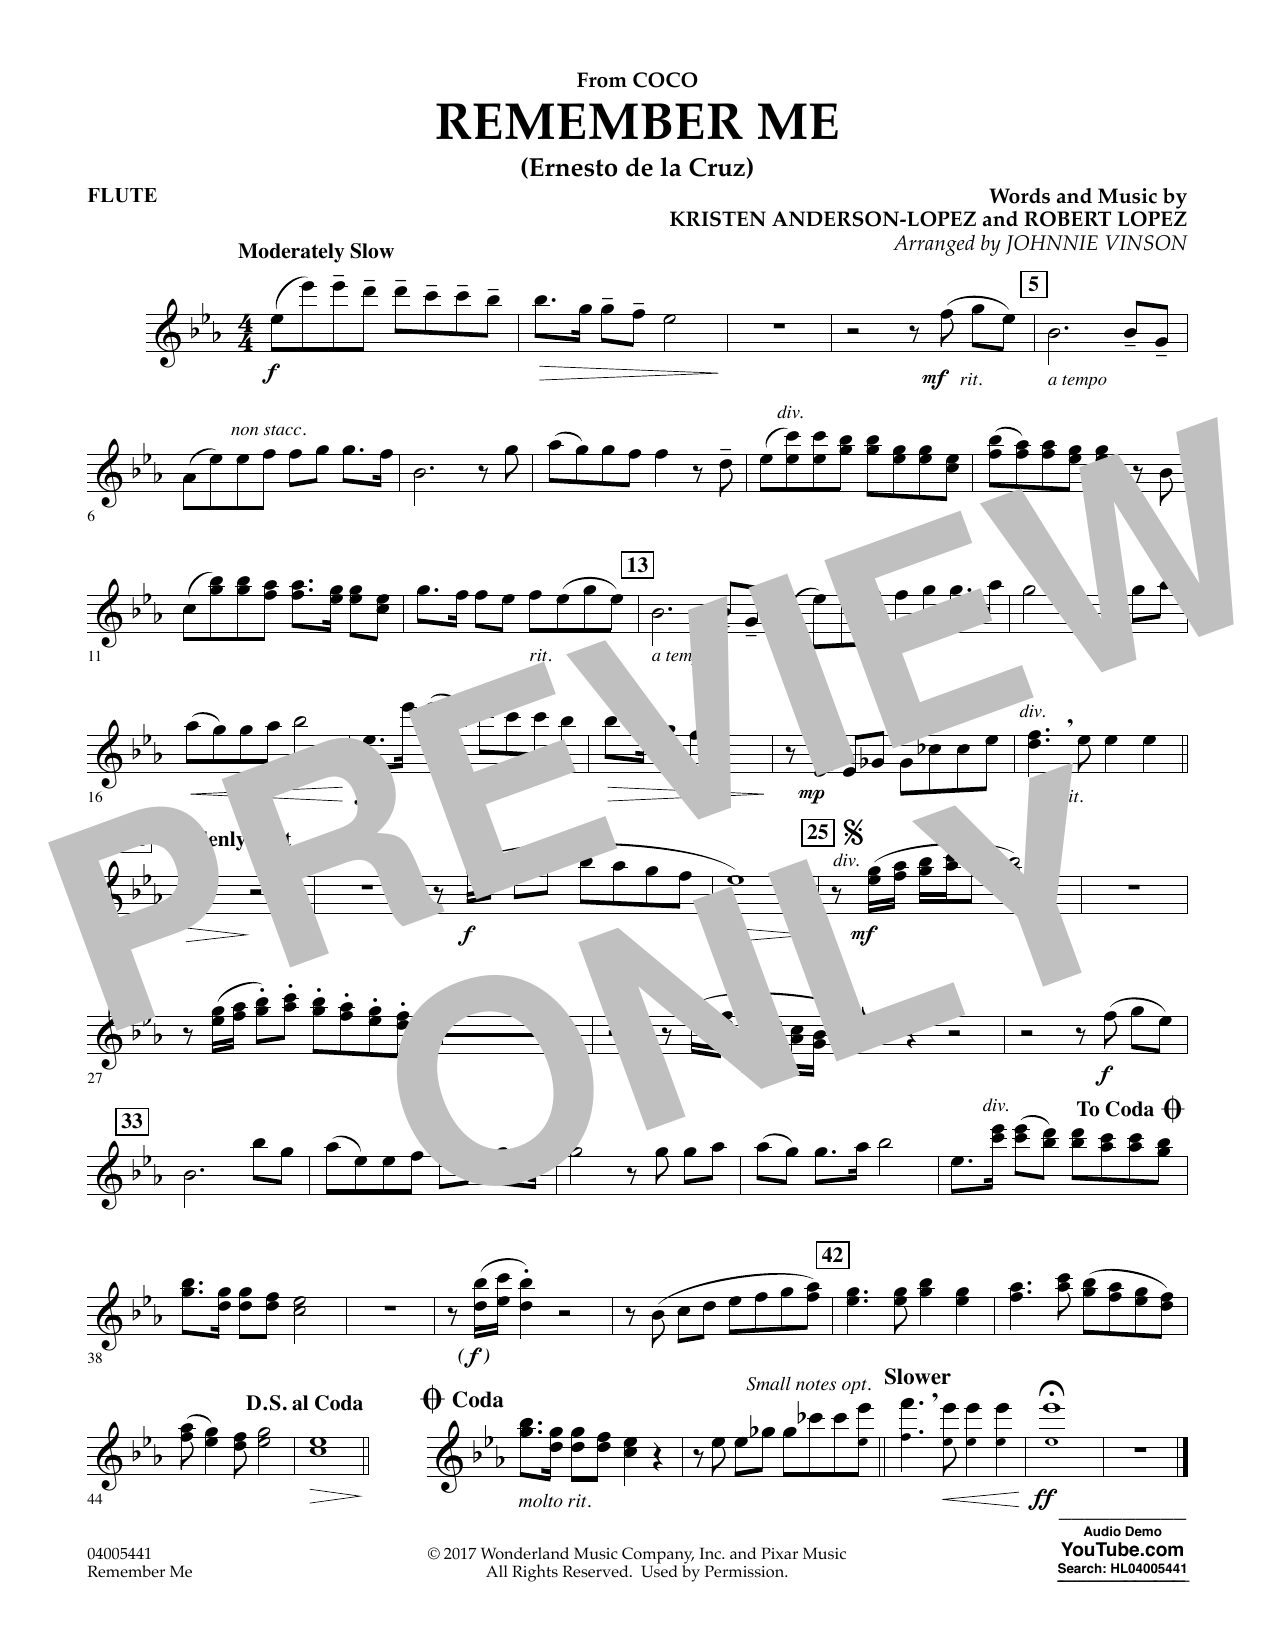 Kristen Anderson-Lopez & Robert Lopez Remember Me (from Coco) (arr. Johnnie Vinson) - Flute sheet music notes and chords. Download Printable PDF.